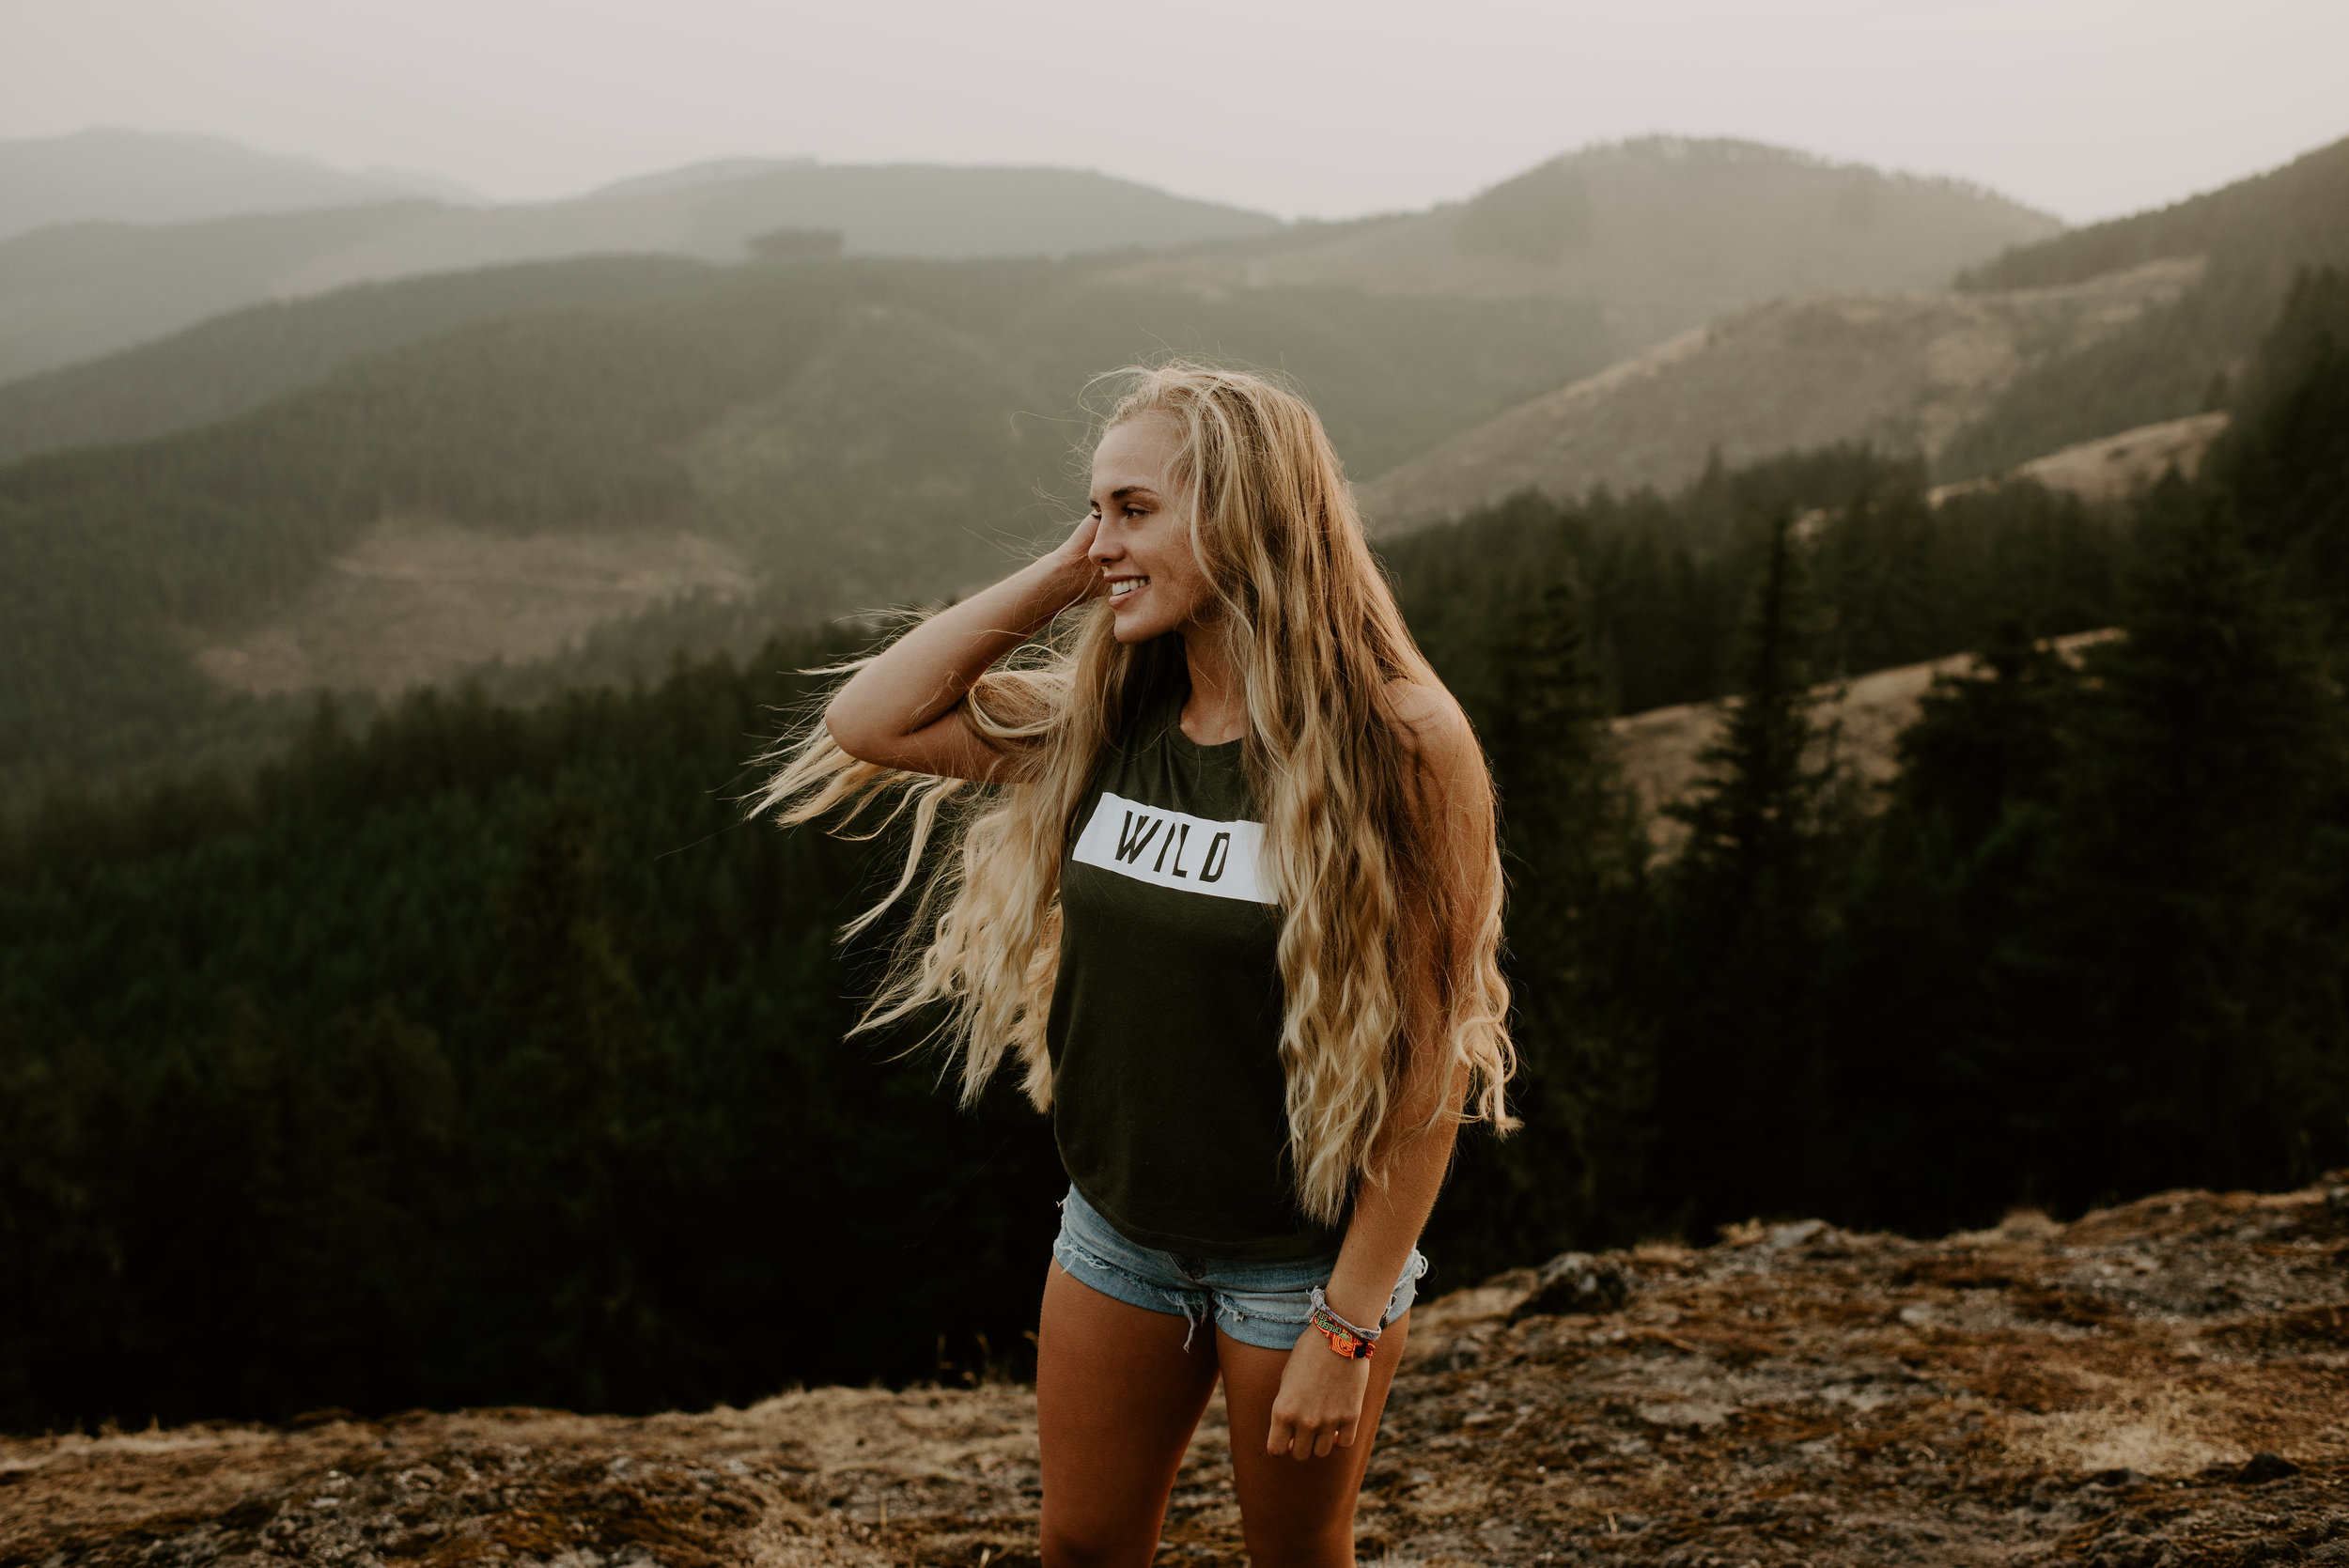 Click to shop The Parks WILD tank —>